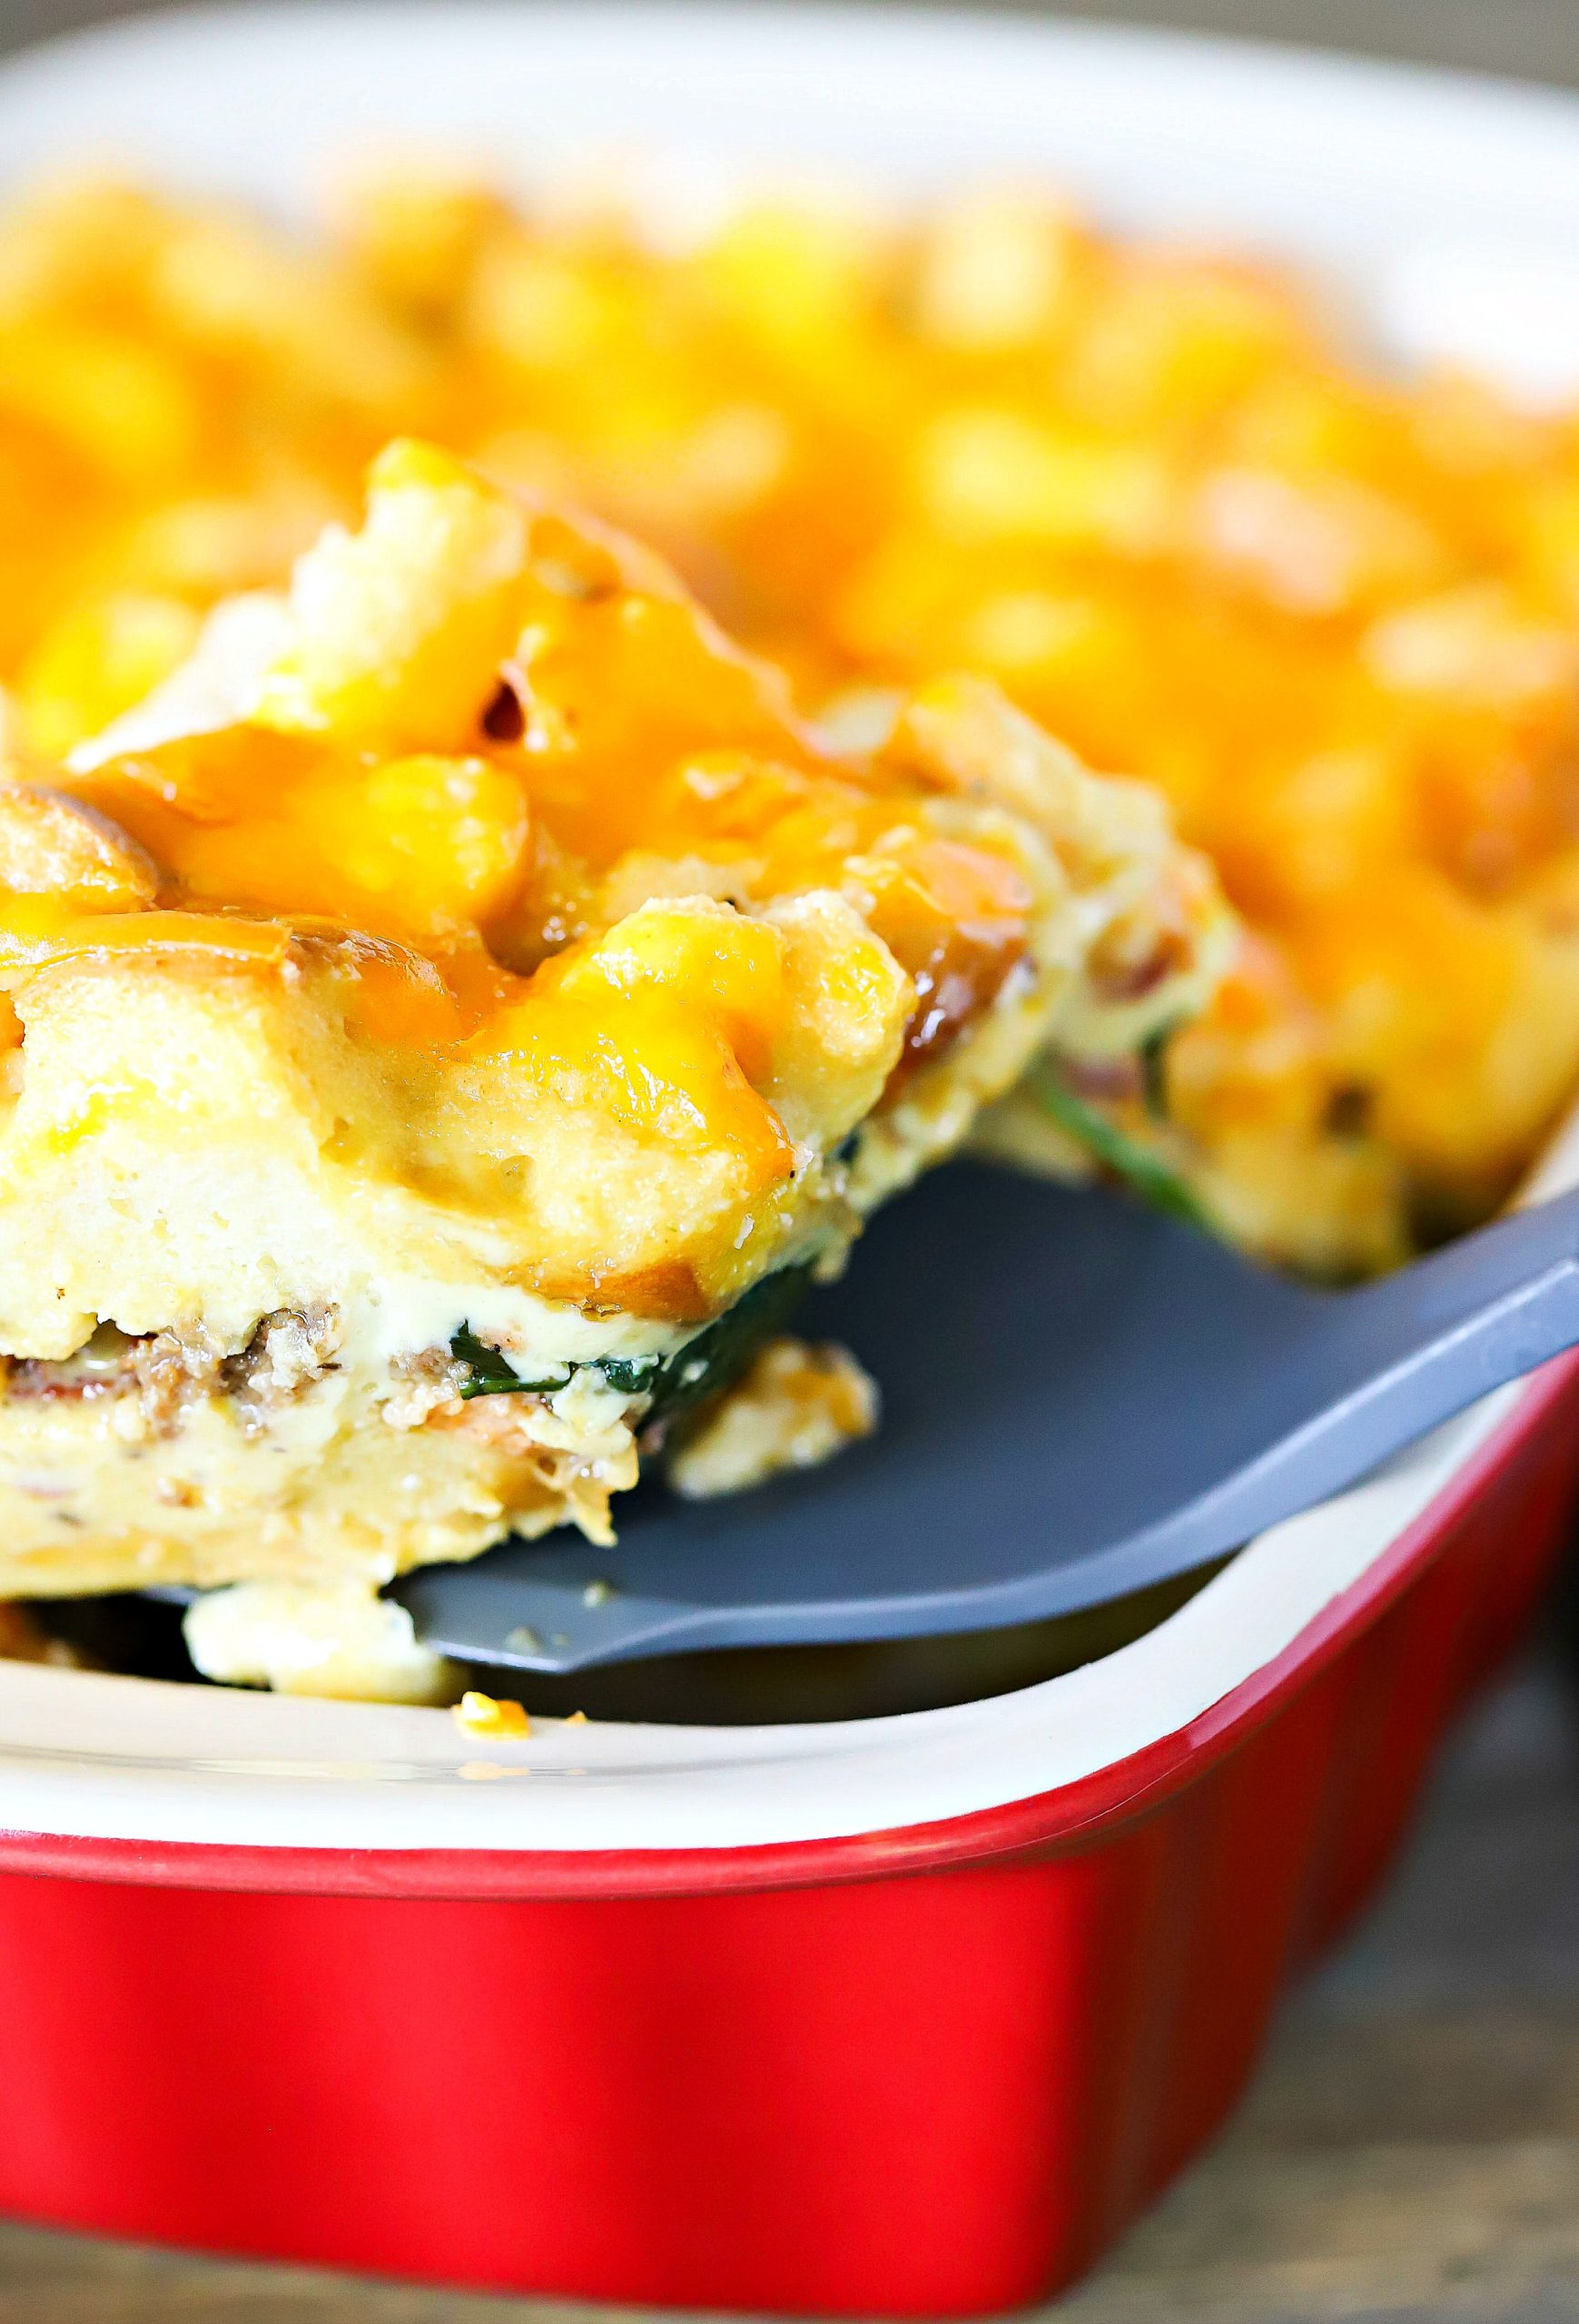 yummy slice of cheesy strata scooped from a casserole dish